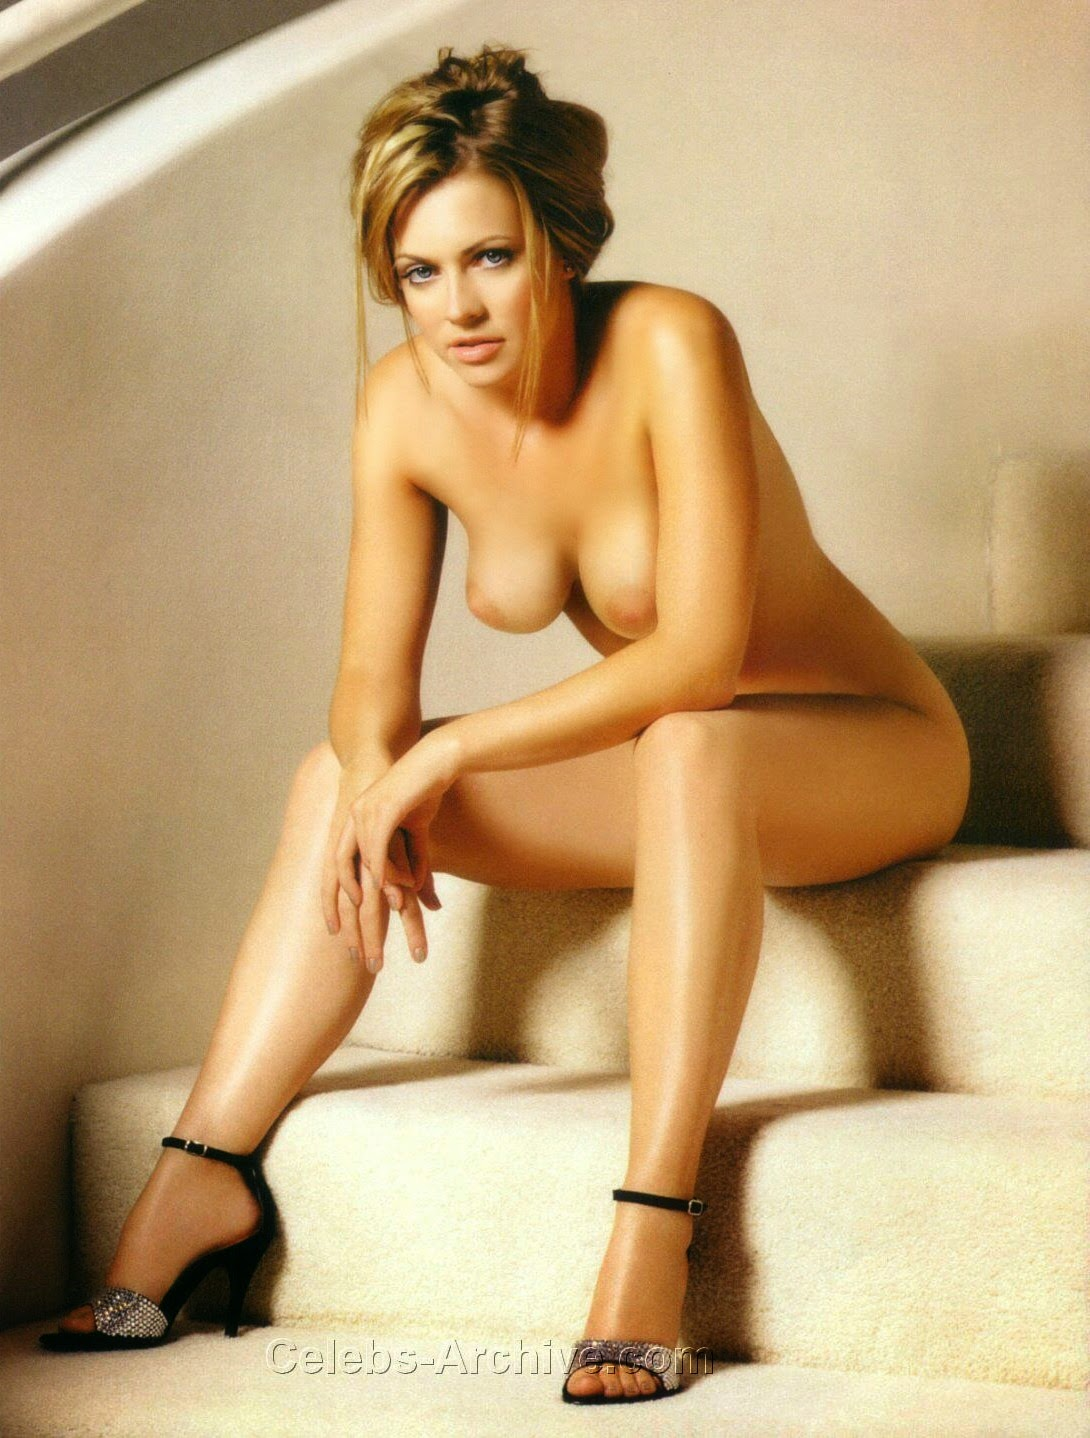 Naked pics of melissa joan hart